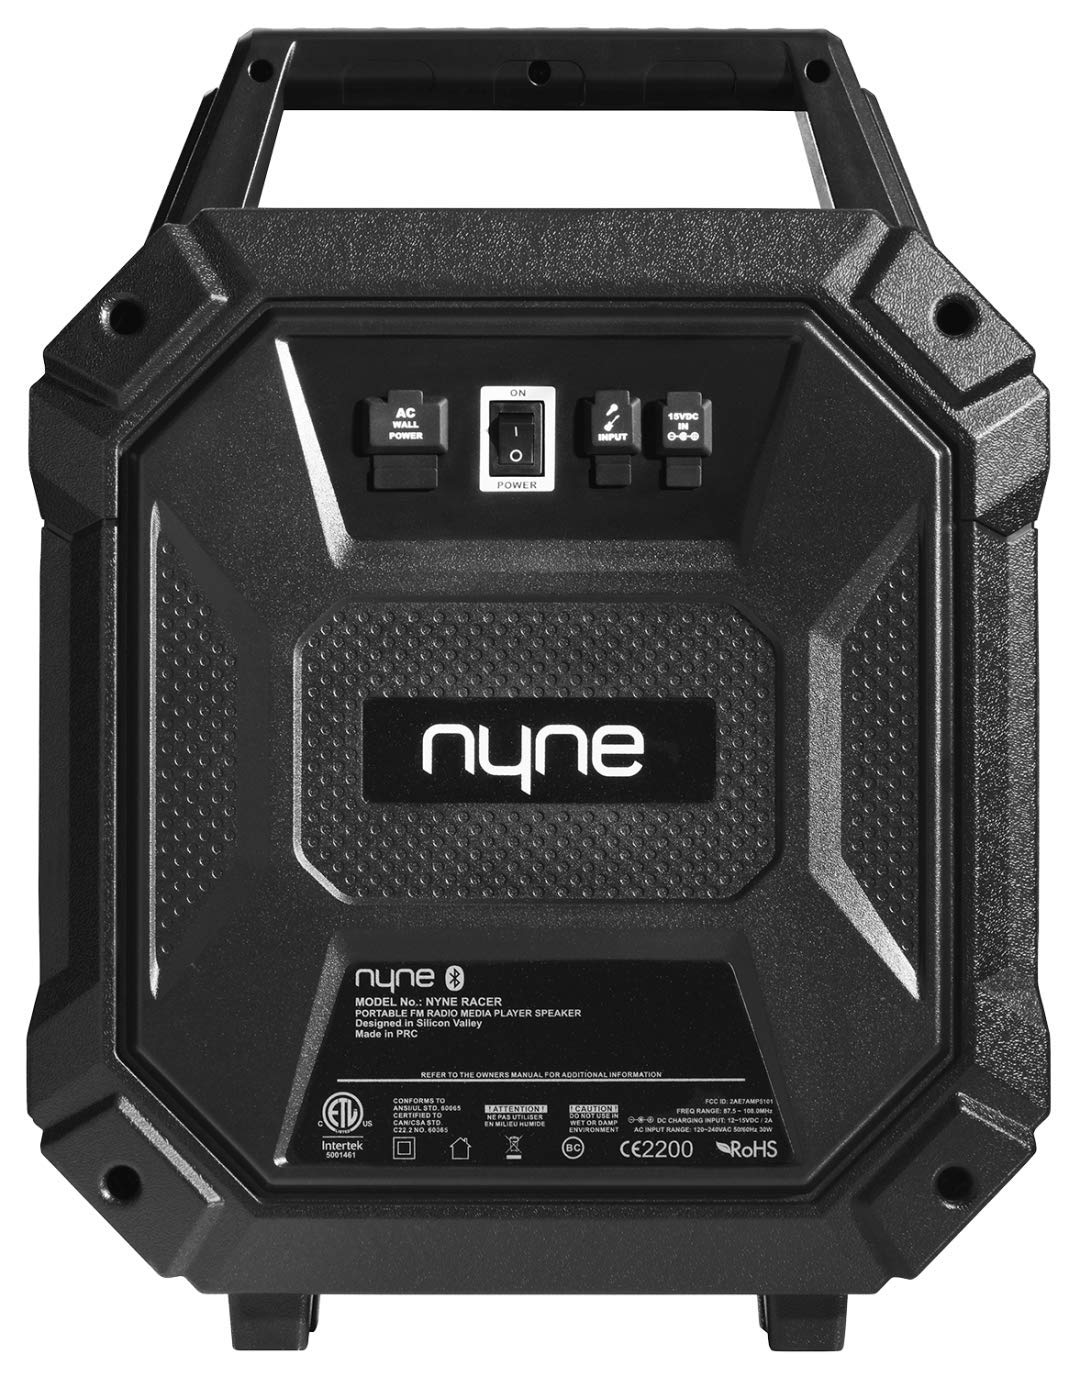 Amazon.com: Nyne Racer Sport Portable Wireless Party Speaker with Party Lights: Home Audio & Theater